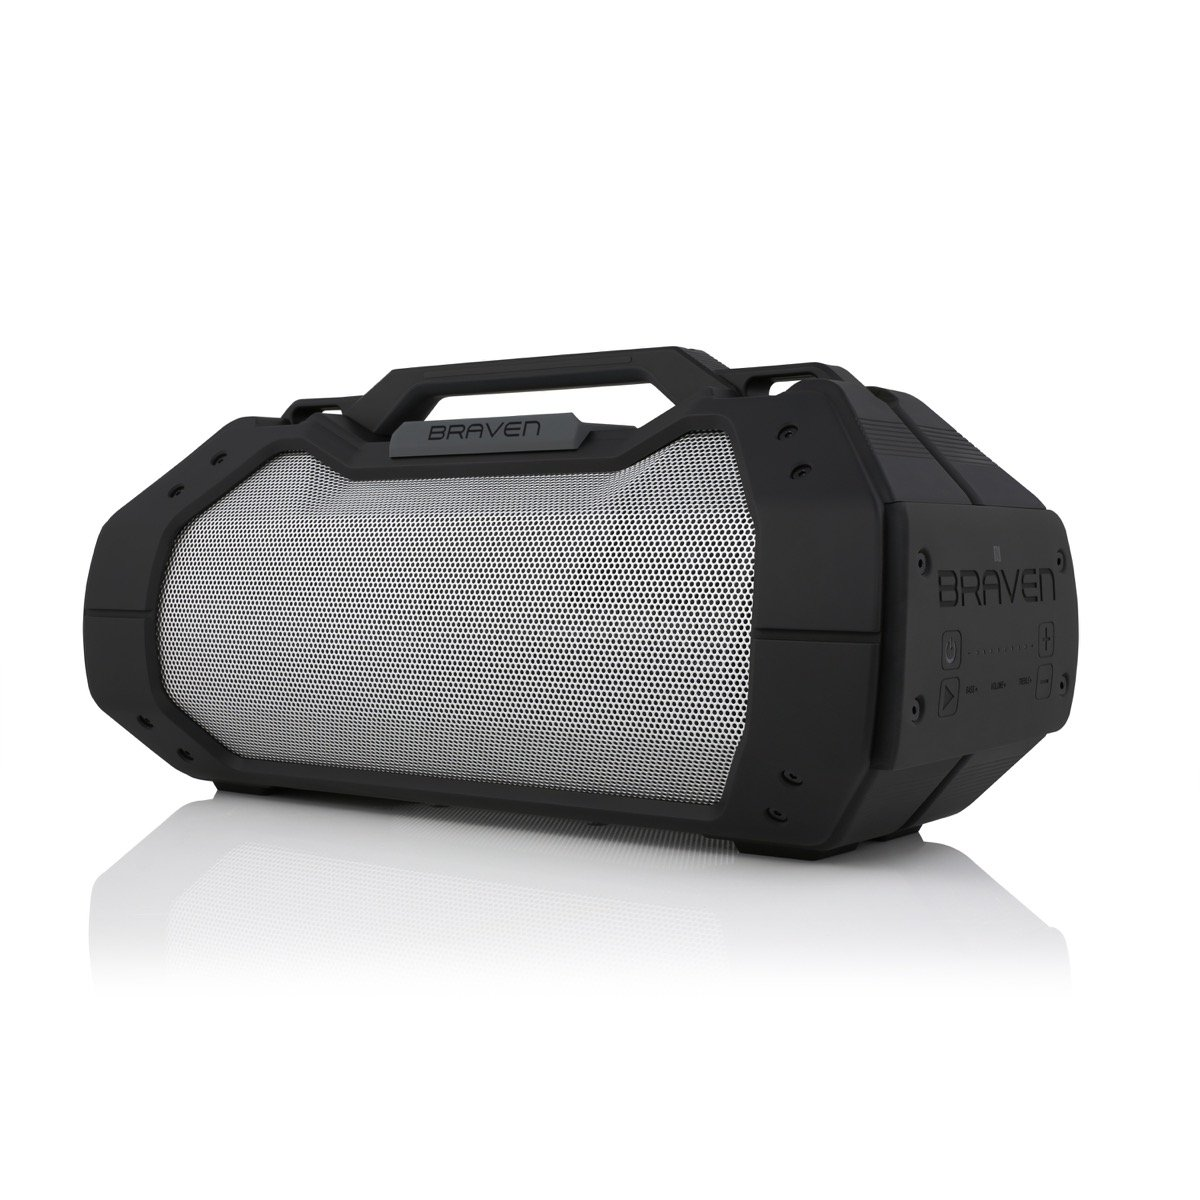 Braven BRV-XXL Wireless Speaker Black Friday Deal 2020